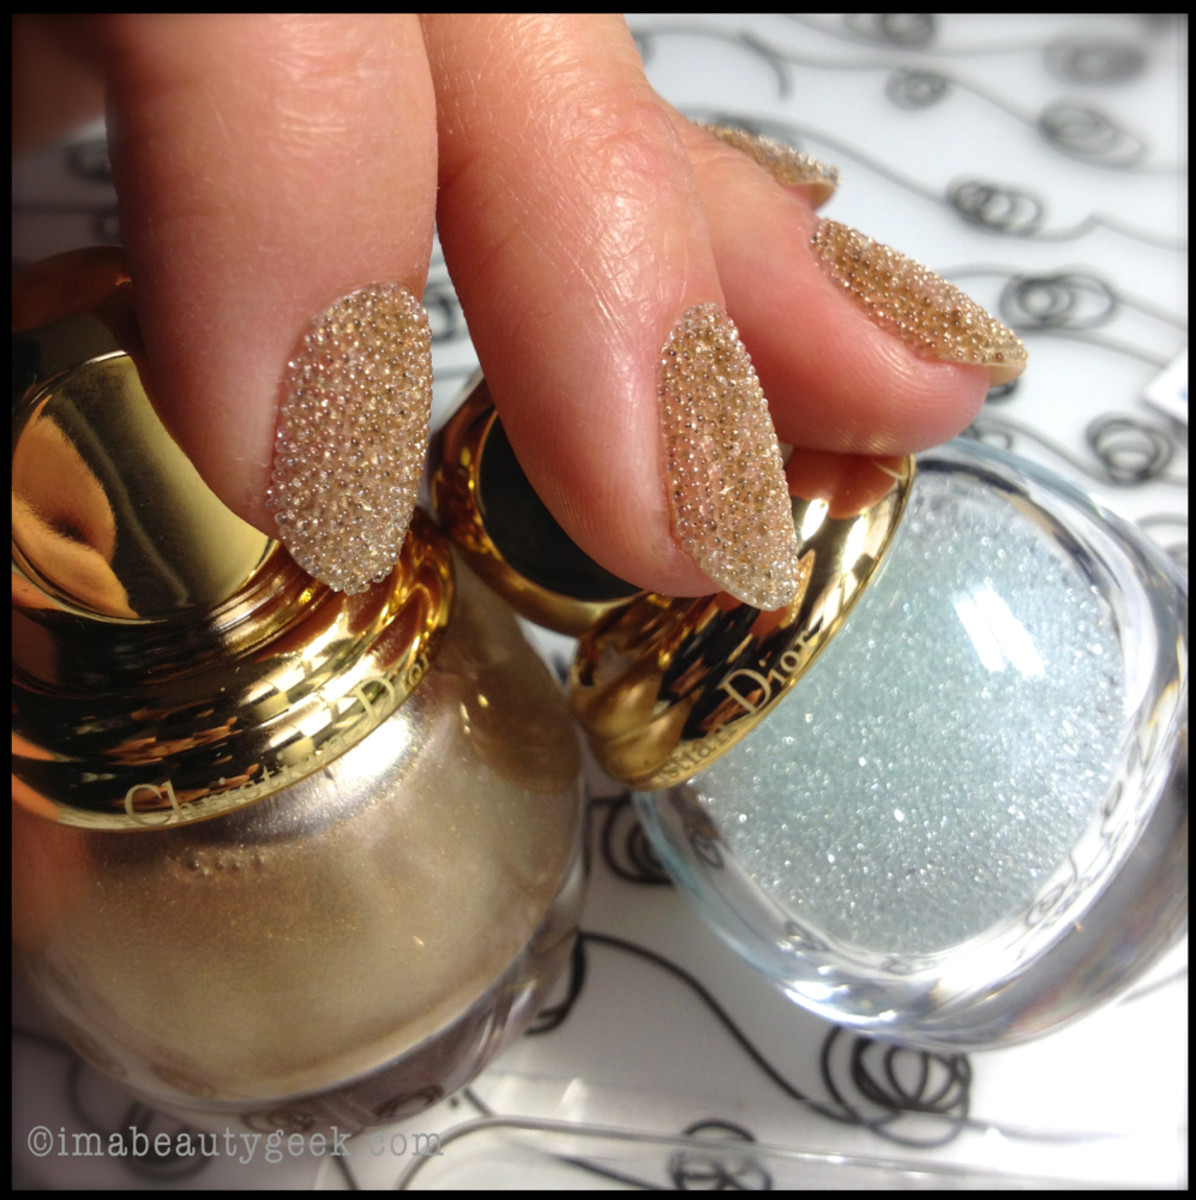 Dior Holiday 2013 Dior Diorific Jewel Manicure Duo 2